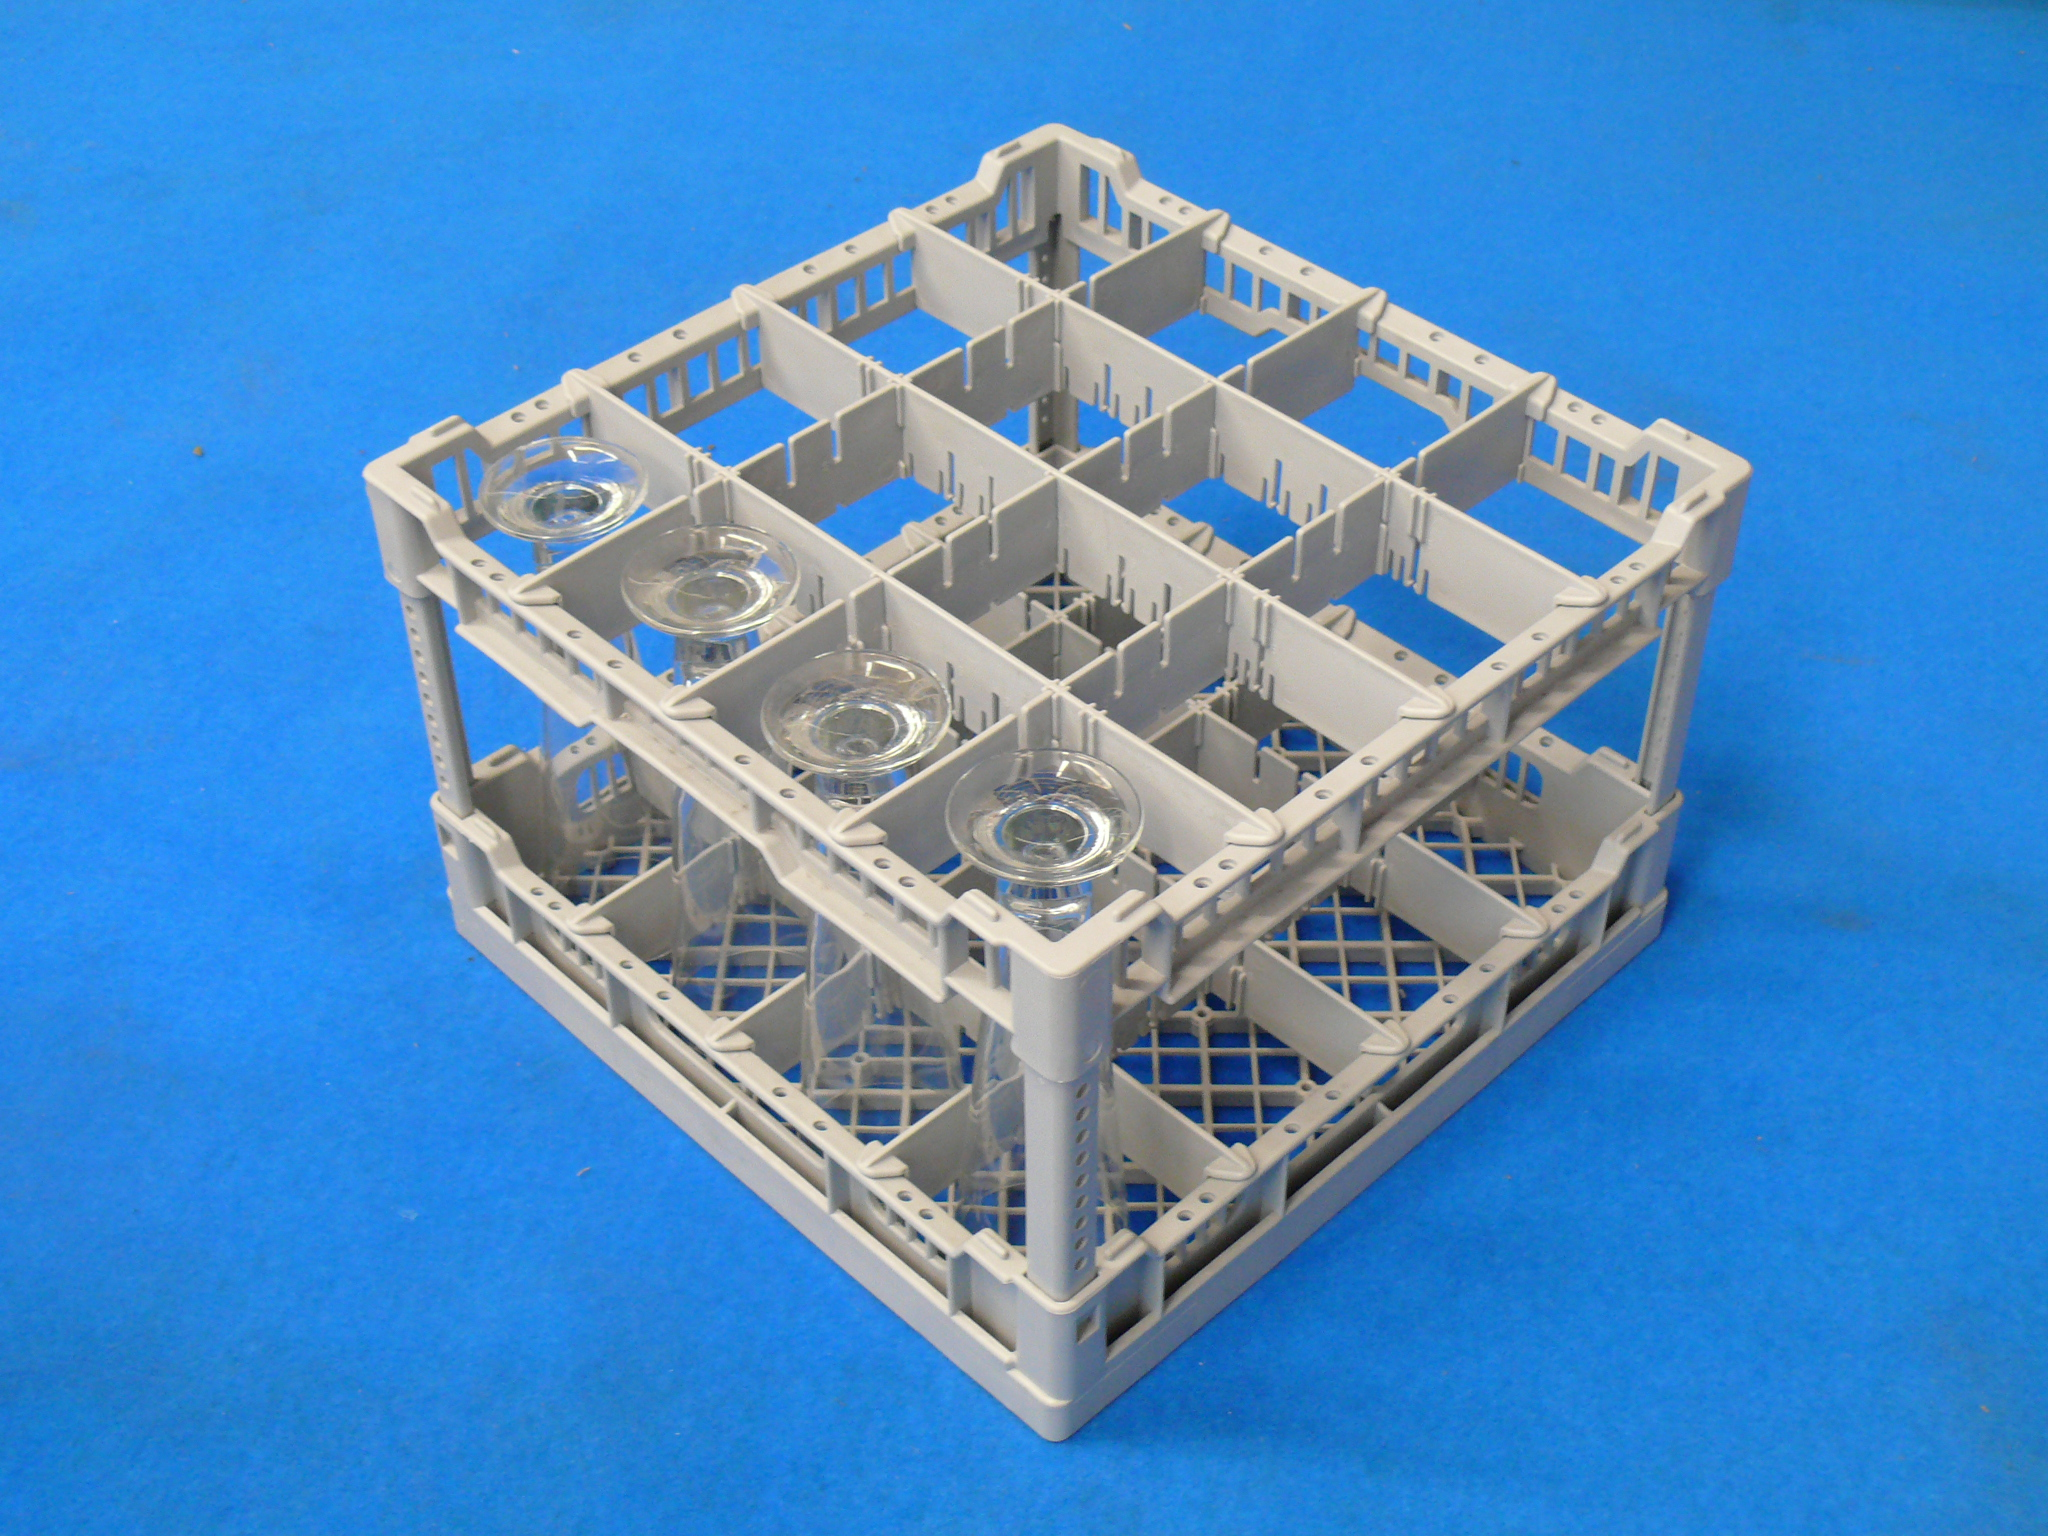 Eurodib USA CC00125 commercial dishwashers & glasswashers - accessories